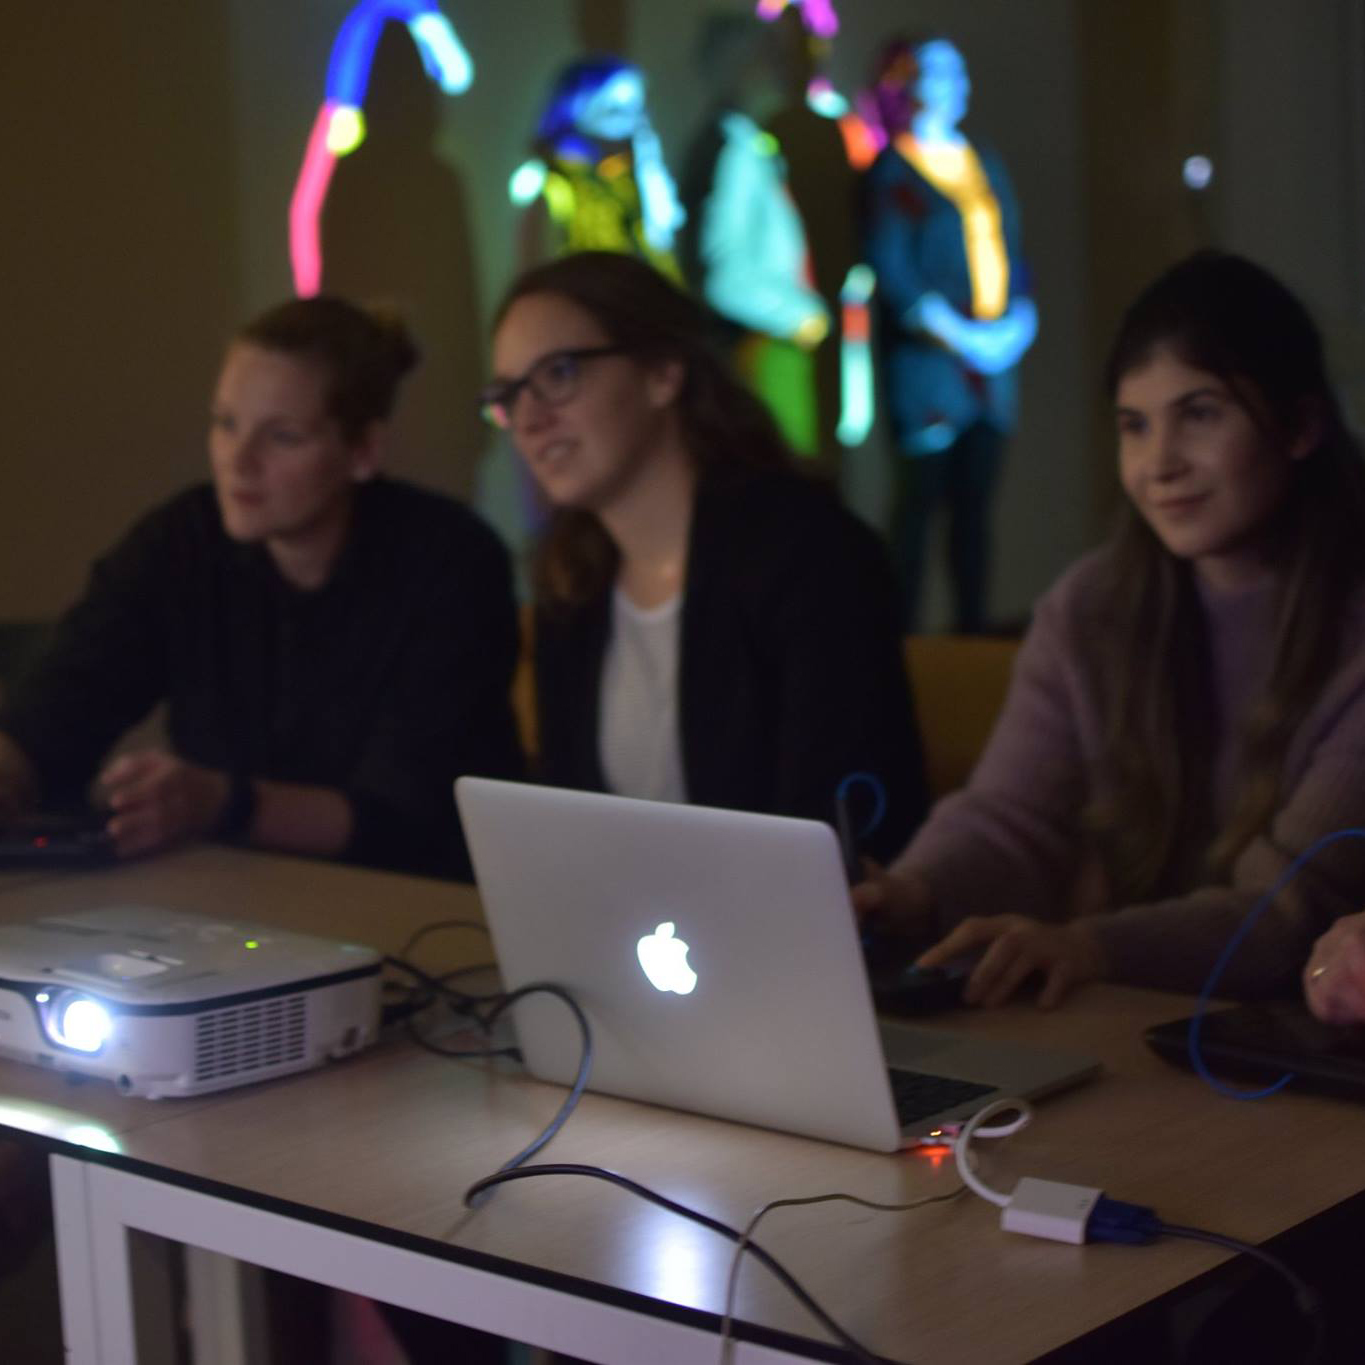 A picture showing the experimentation and developing creative ideas by light-up collective